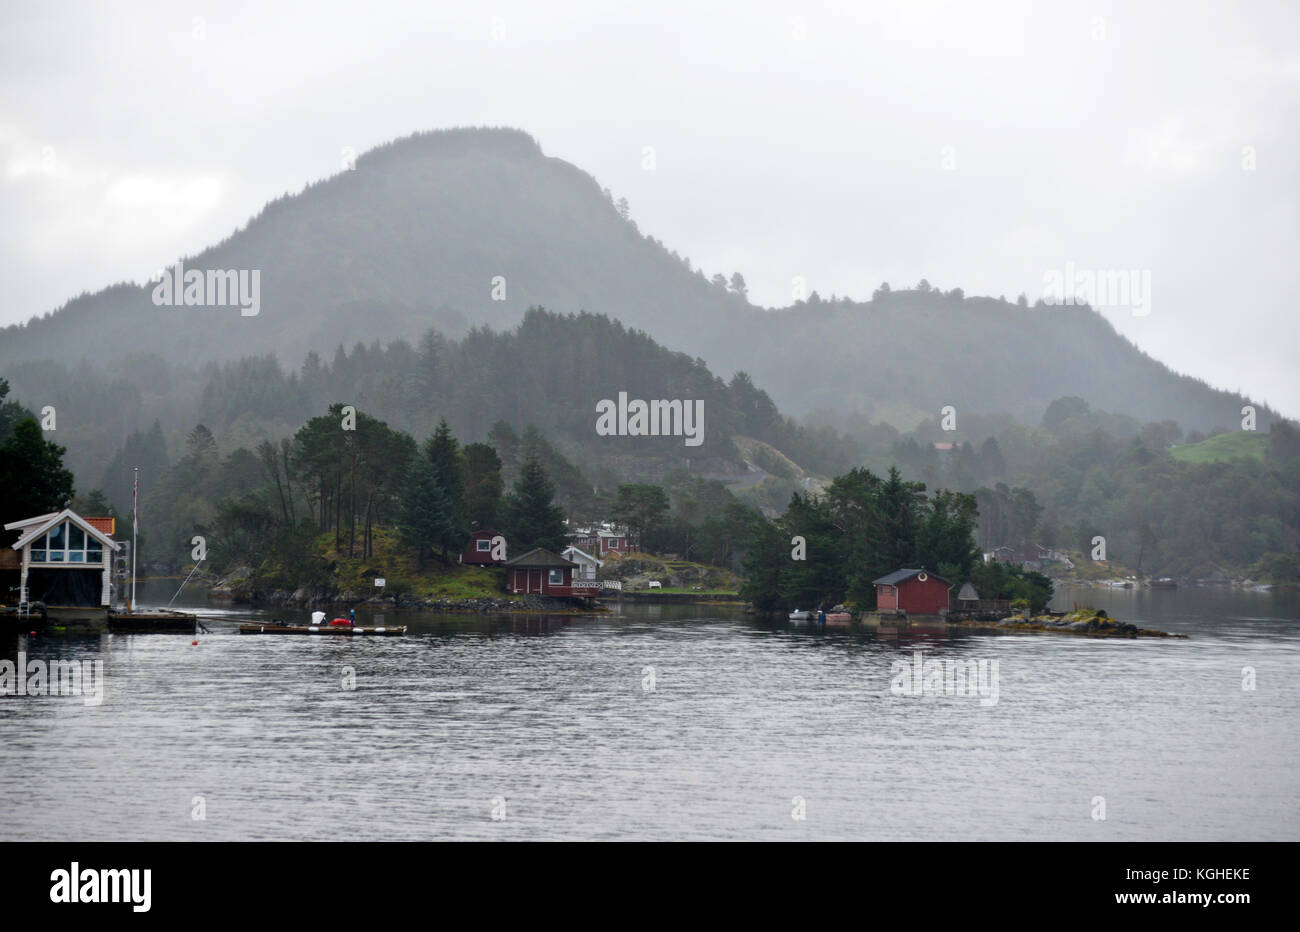 Farmhouses in the shore of Sognjefjorden, Norway - Stock Image